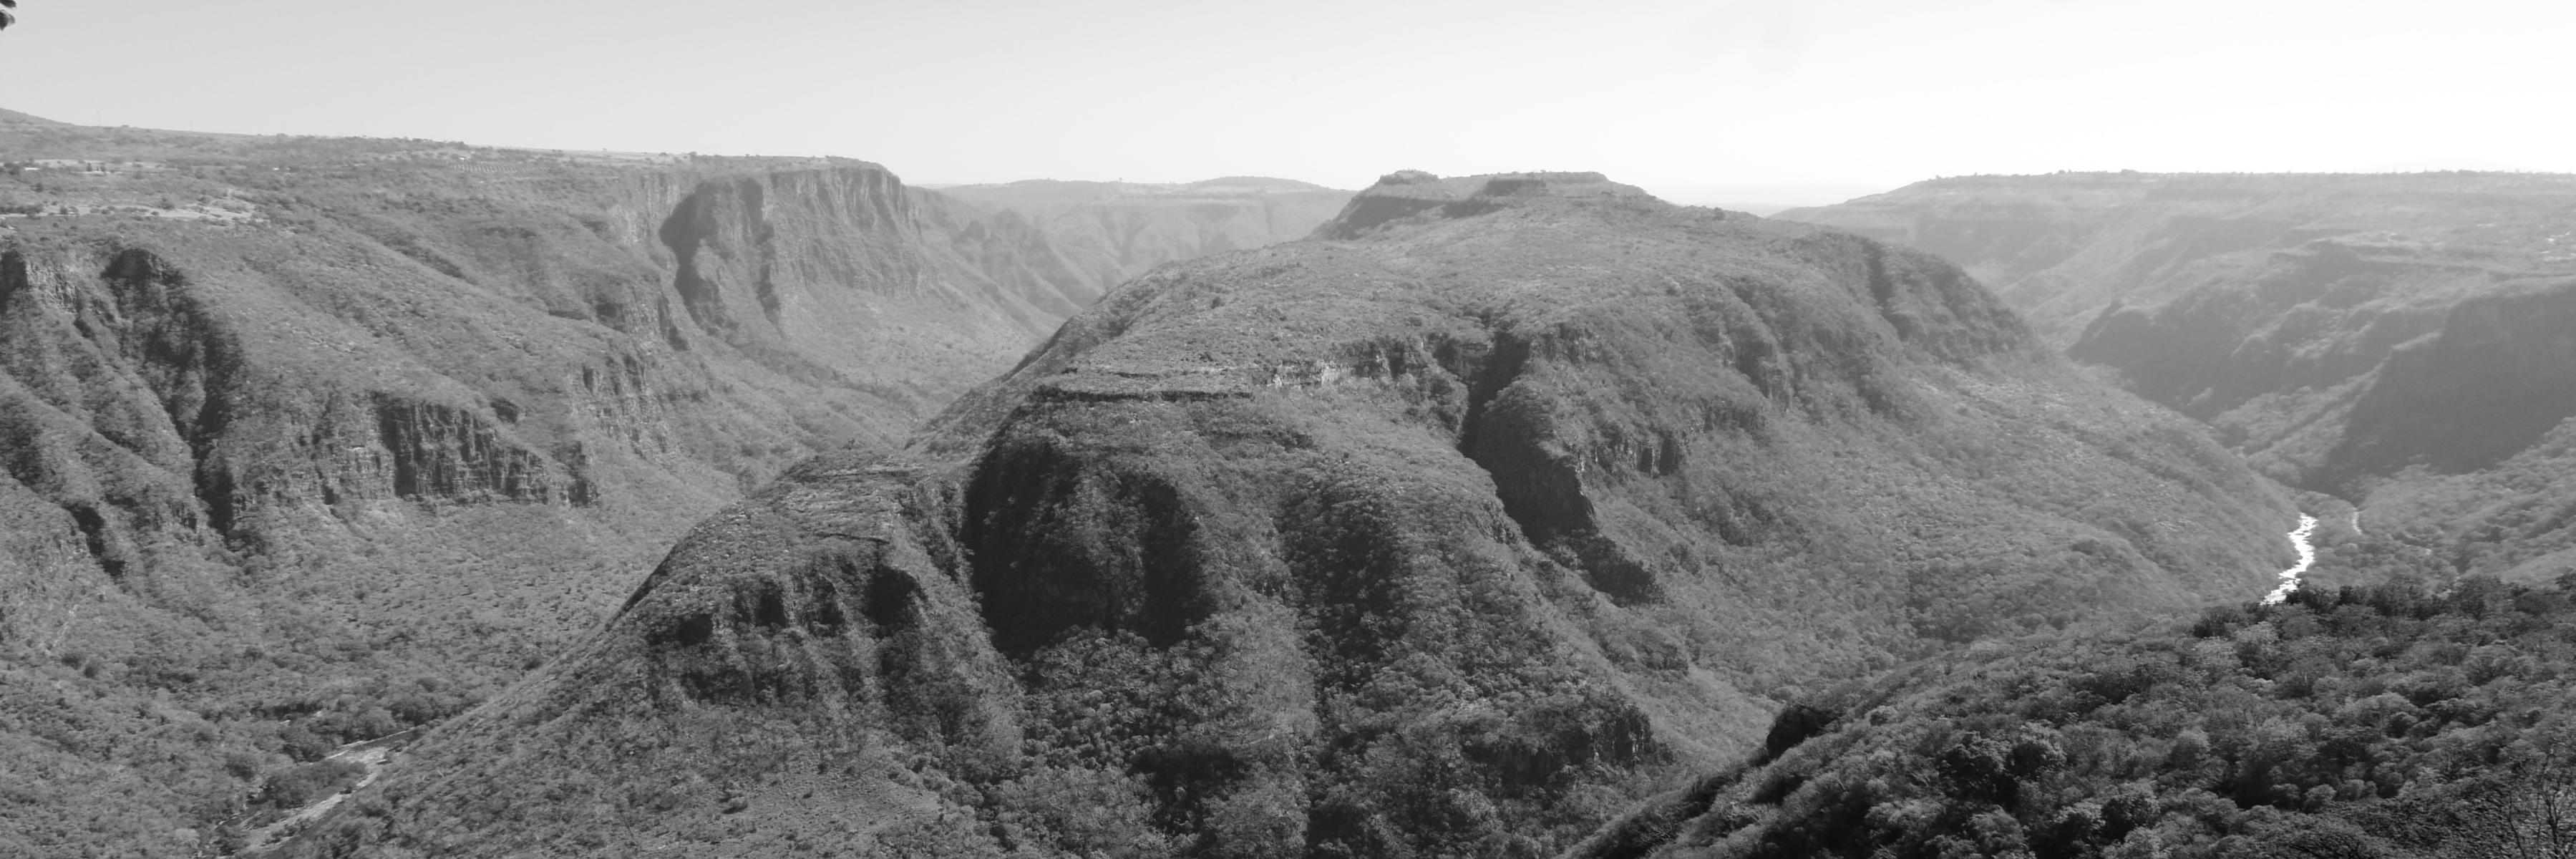 Black and white panoramic view of Barranca de Huentitan canyon in Guadalajara